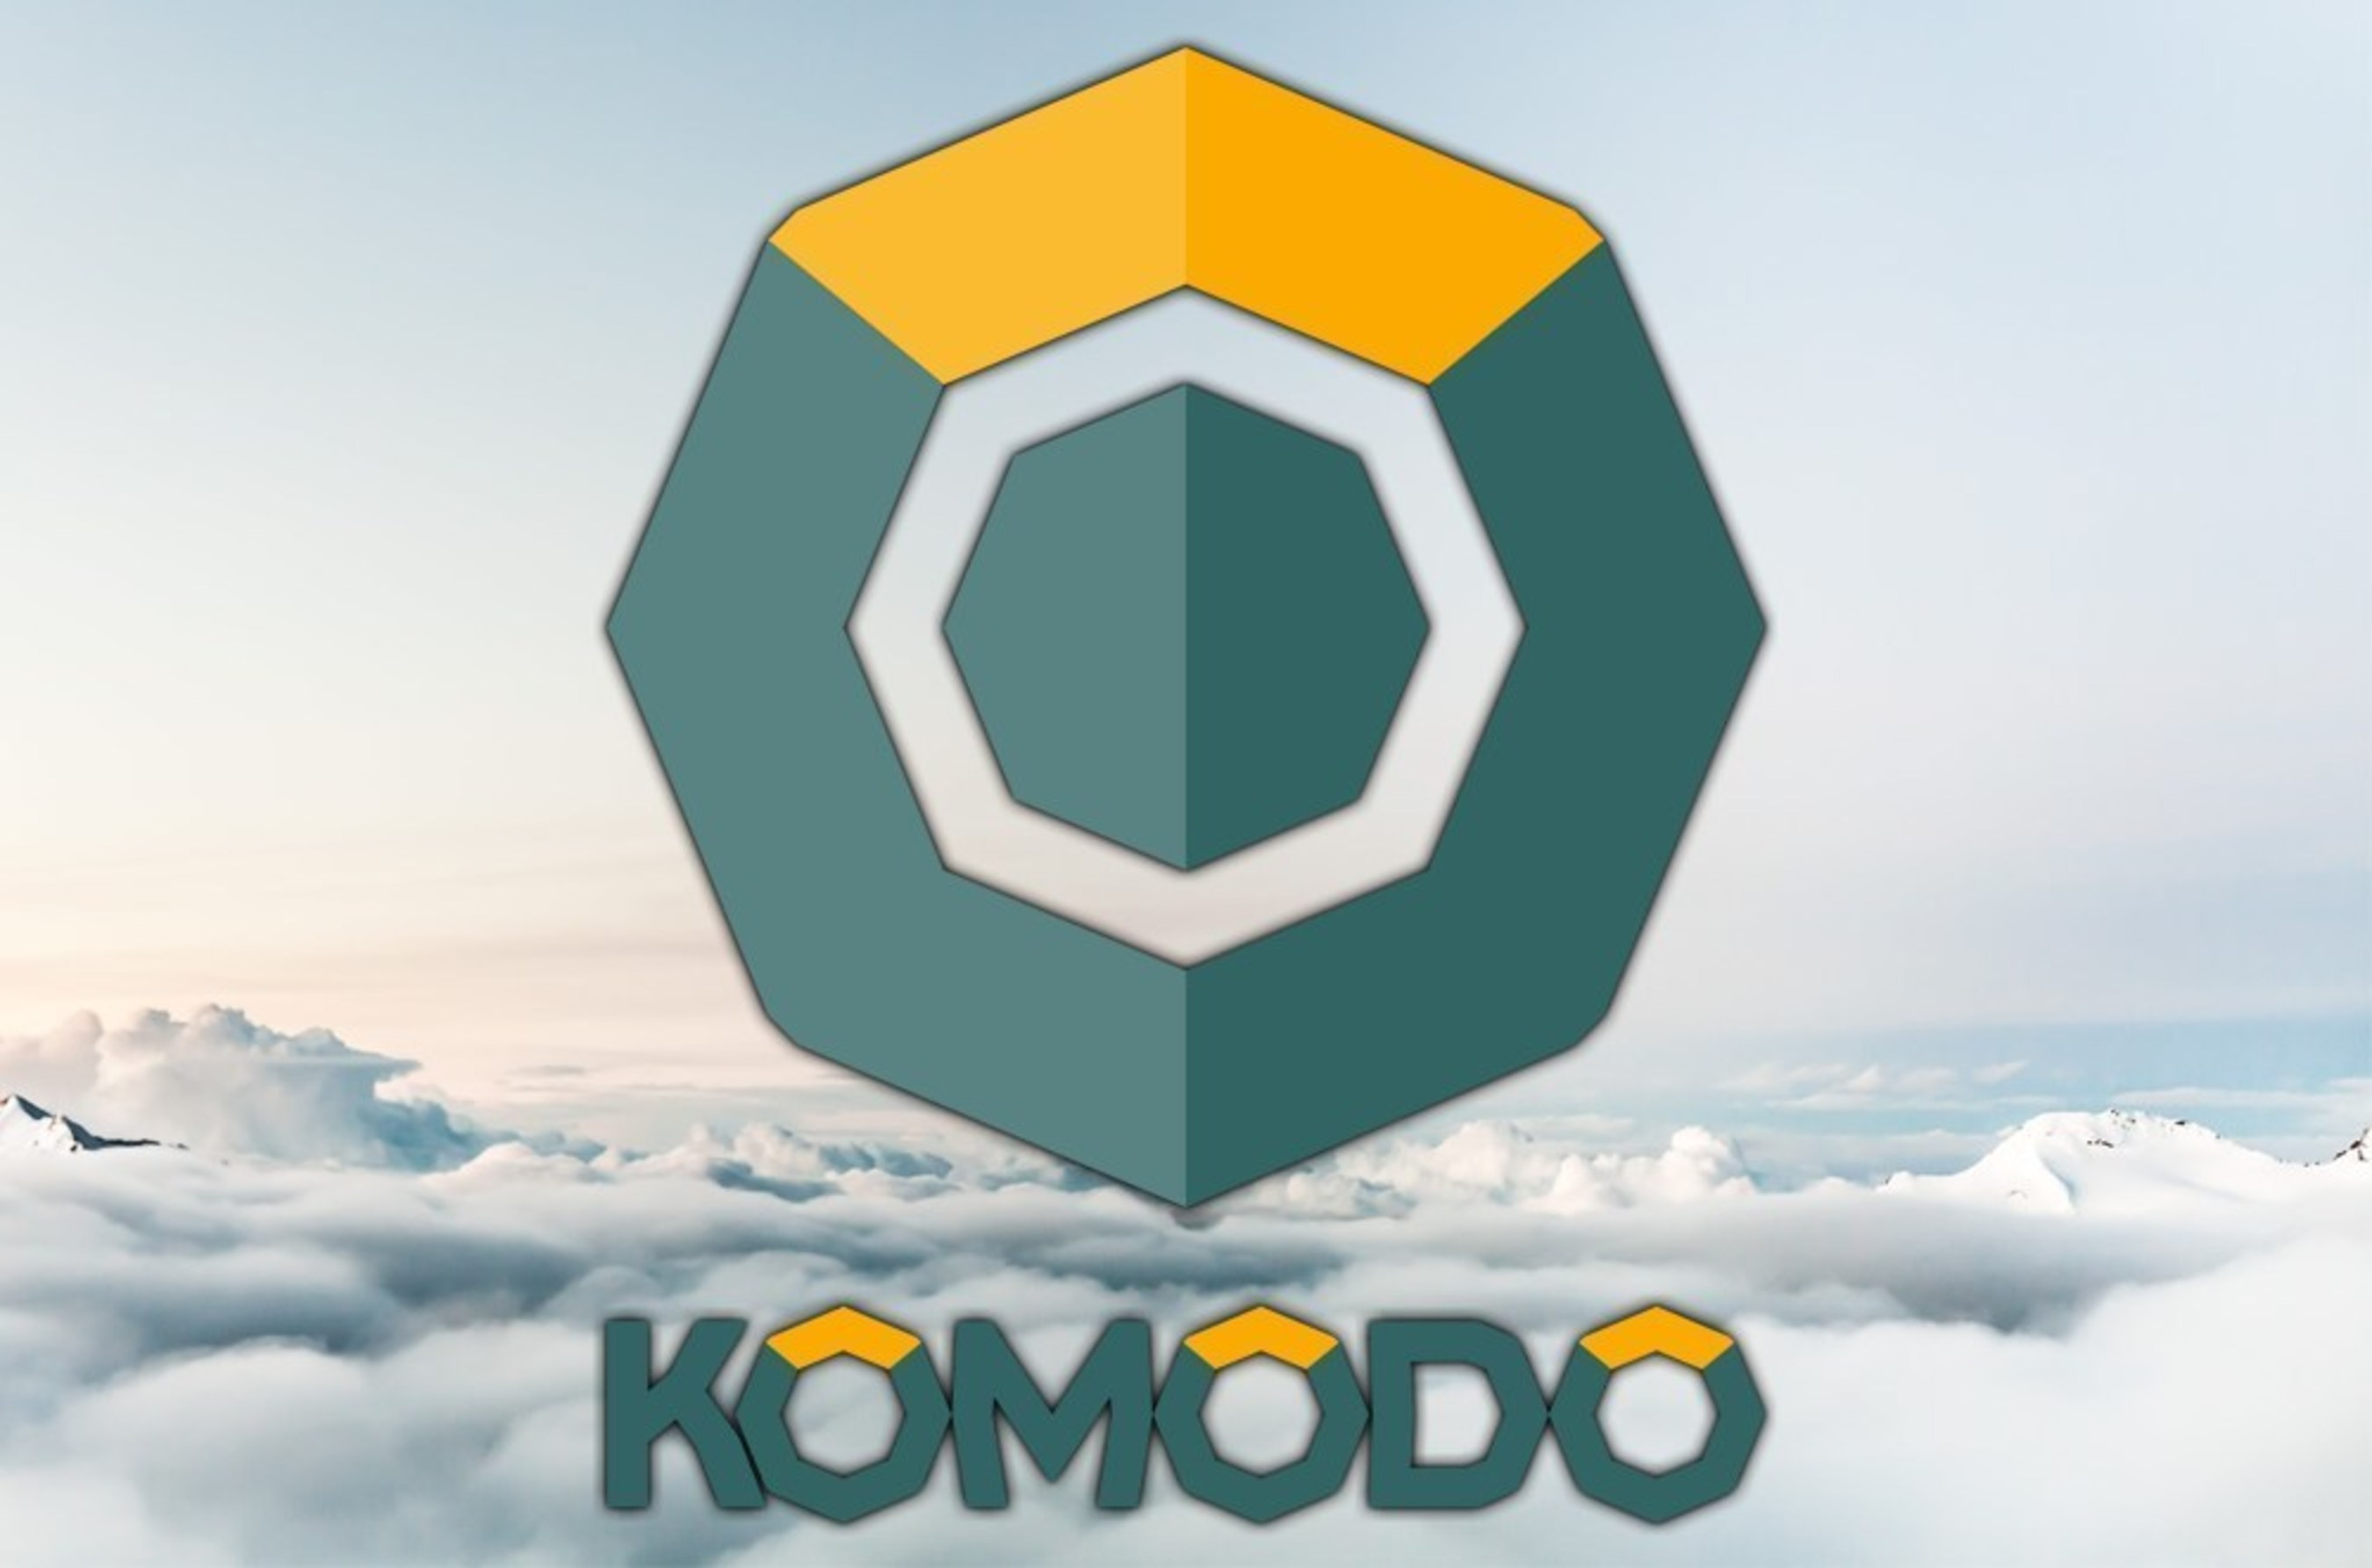 Komodo Cryptocurrency Platform Raises Over 1000 BTC on the First Day of Its ICO